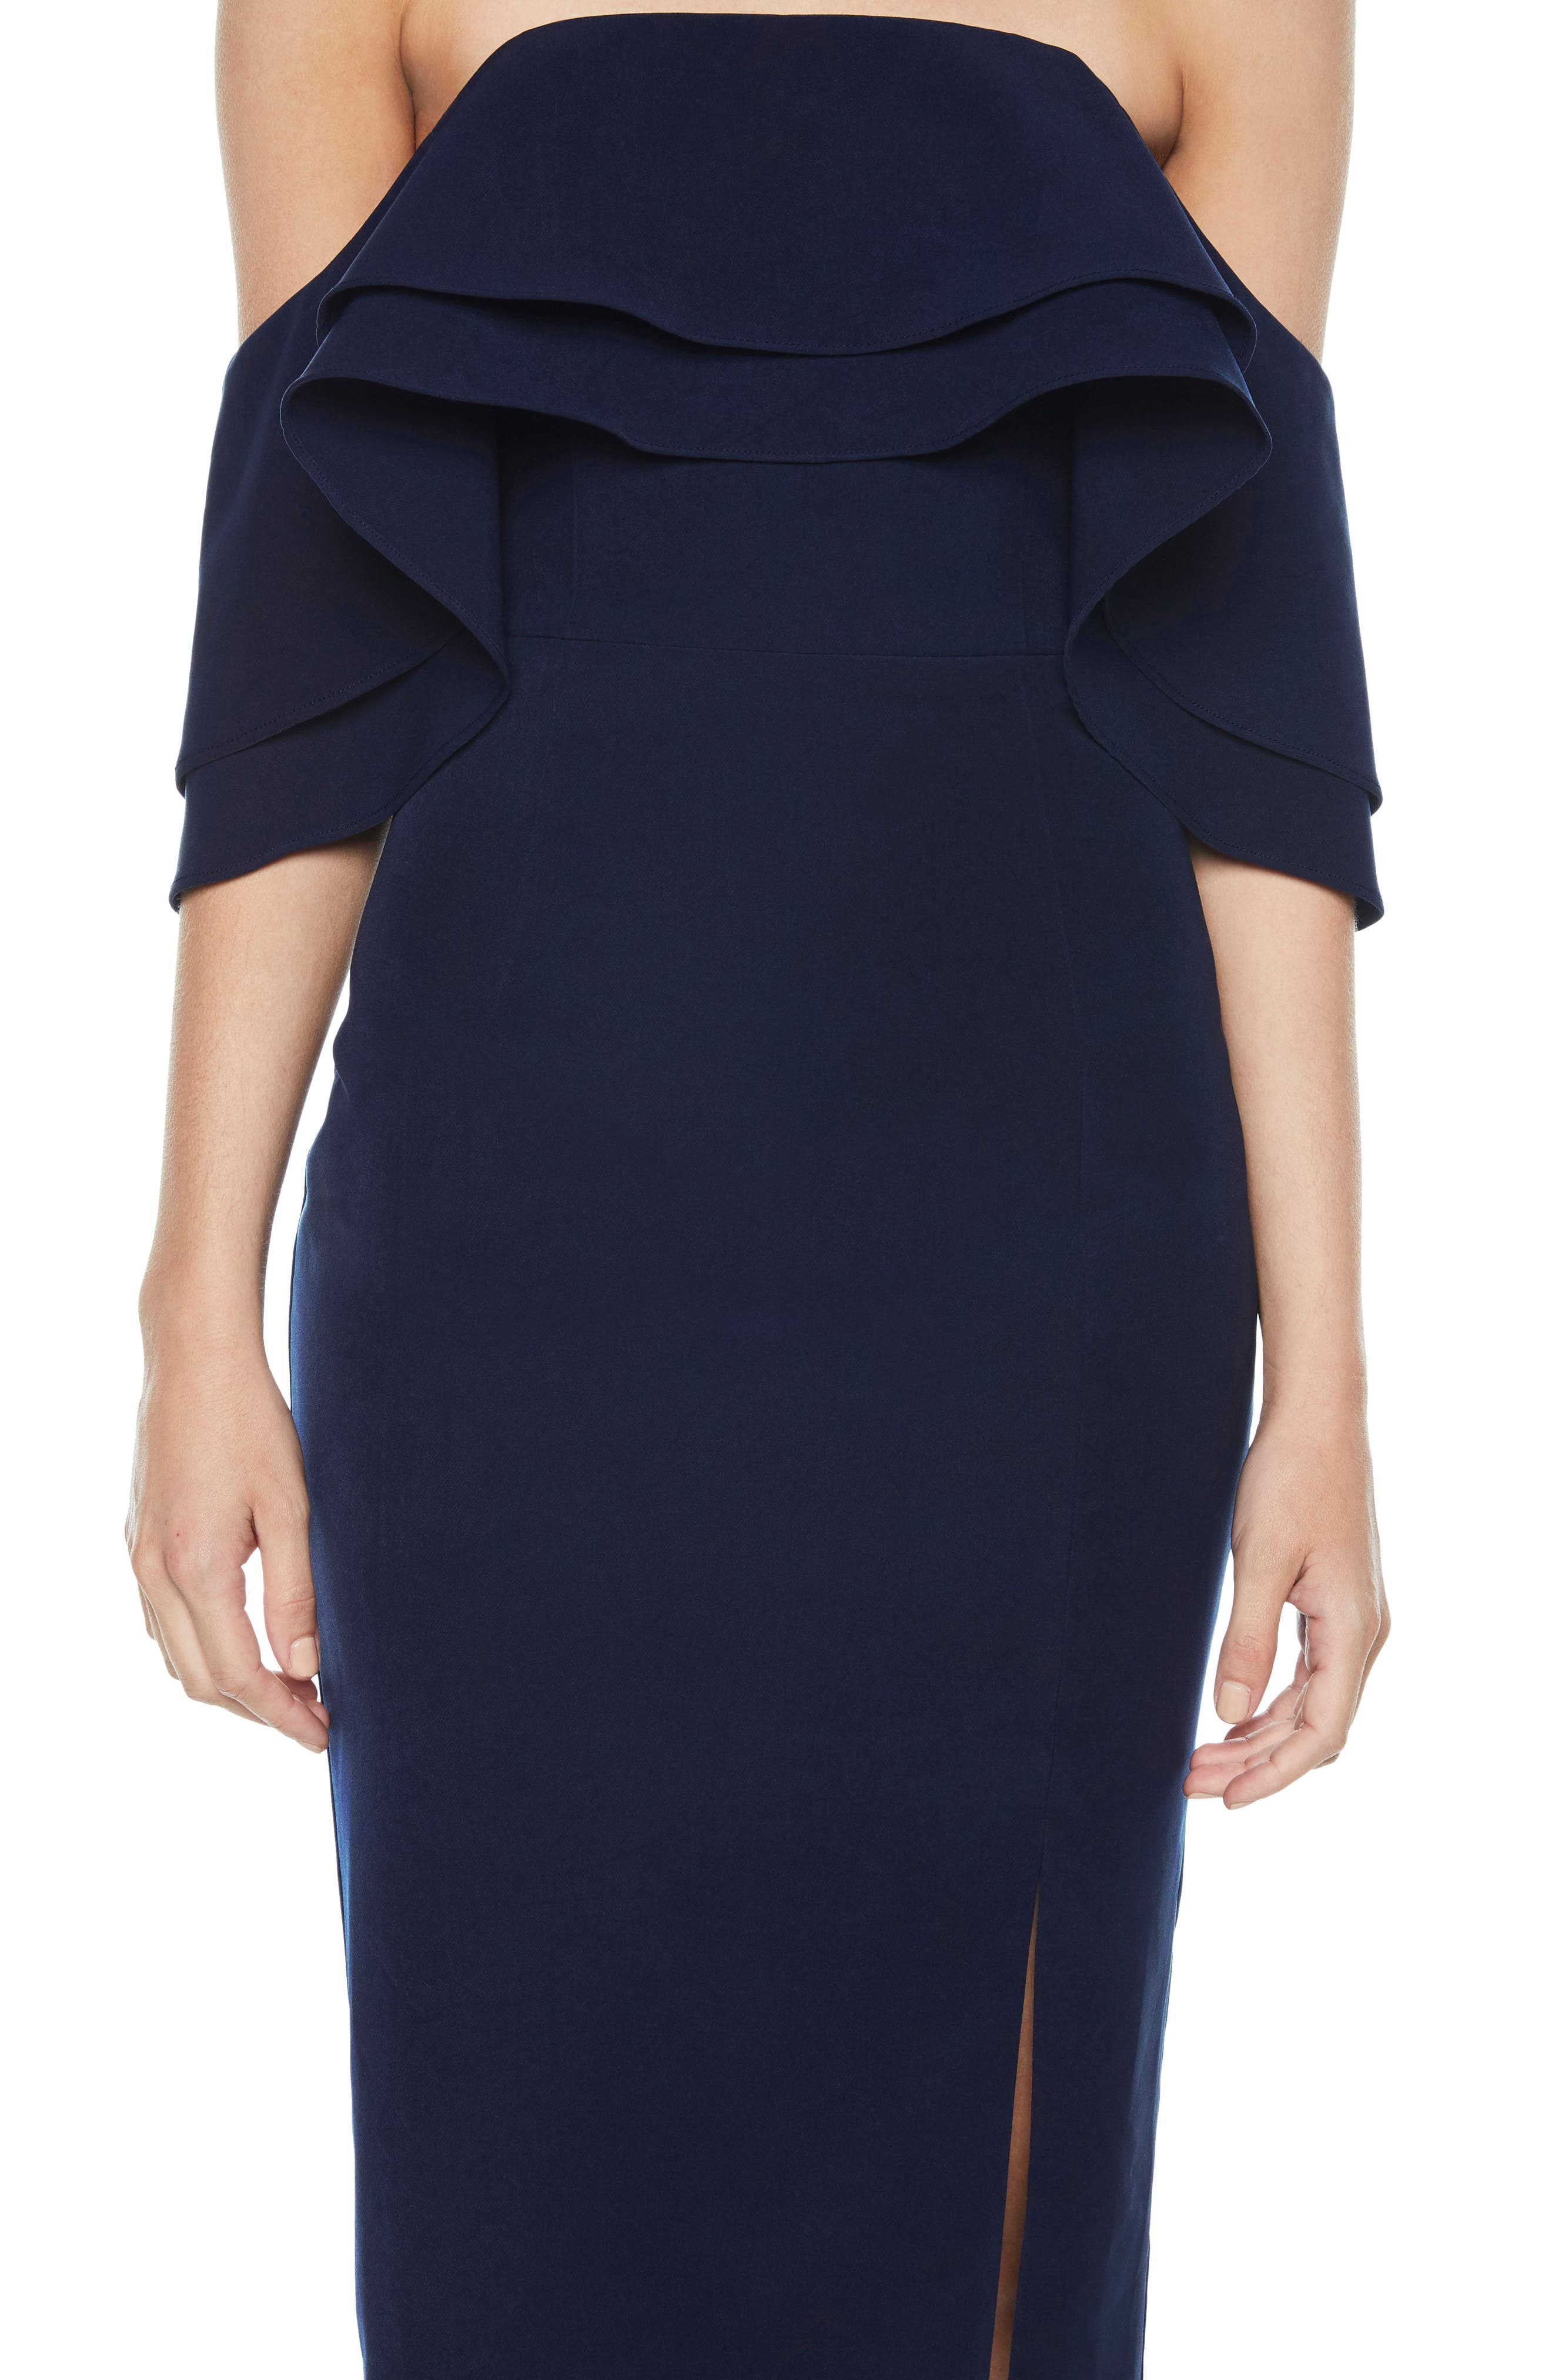 Band Ruffle Off the Shoulder Dress,                             Alternate thumbnail 5, color,                             Navy